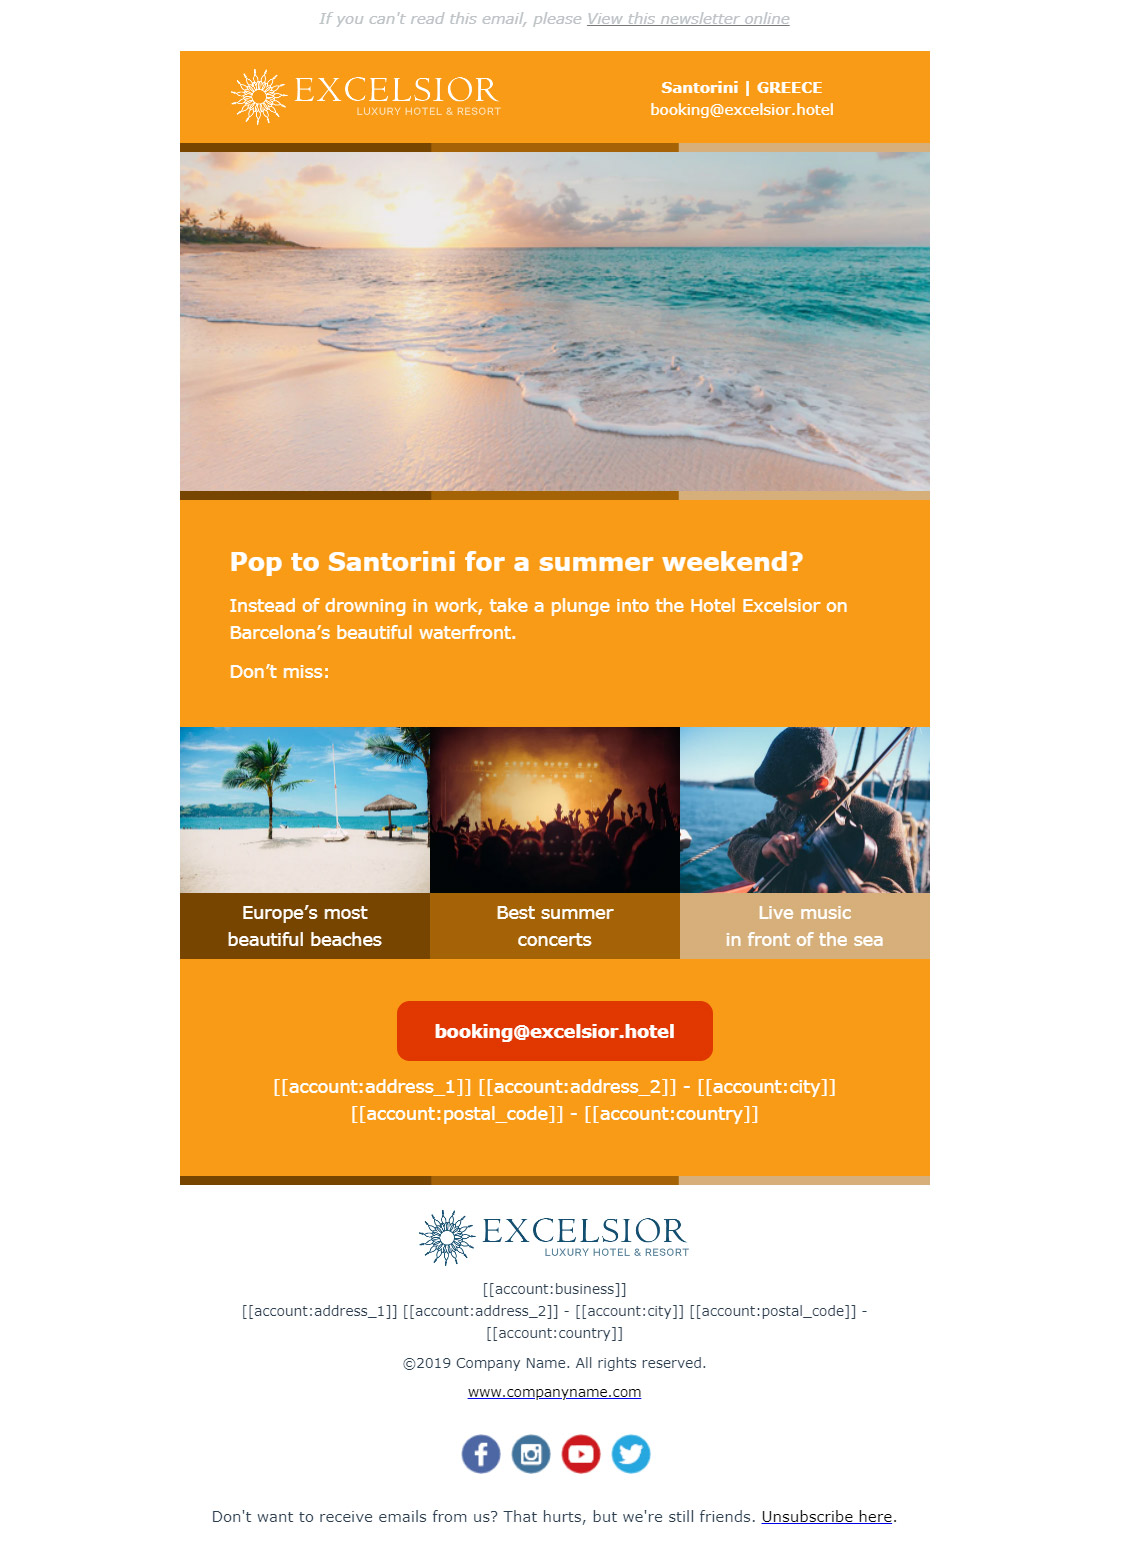 Hotel newsletter example - Show highlights